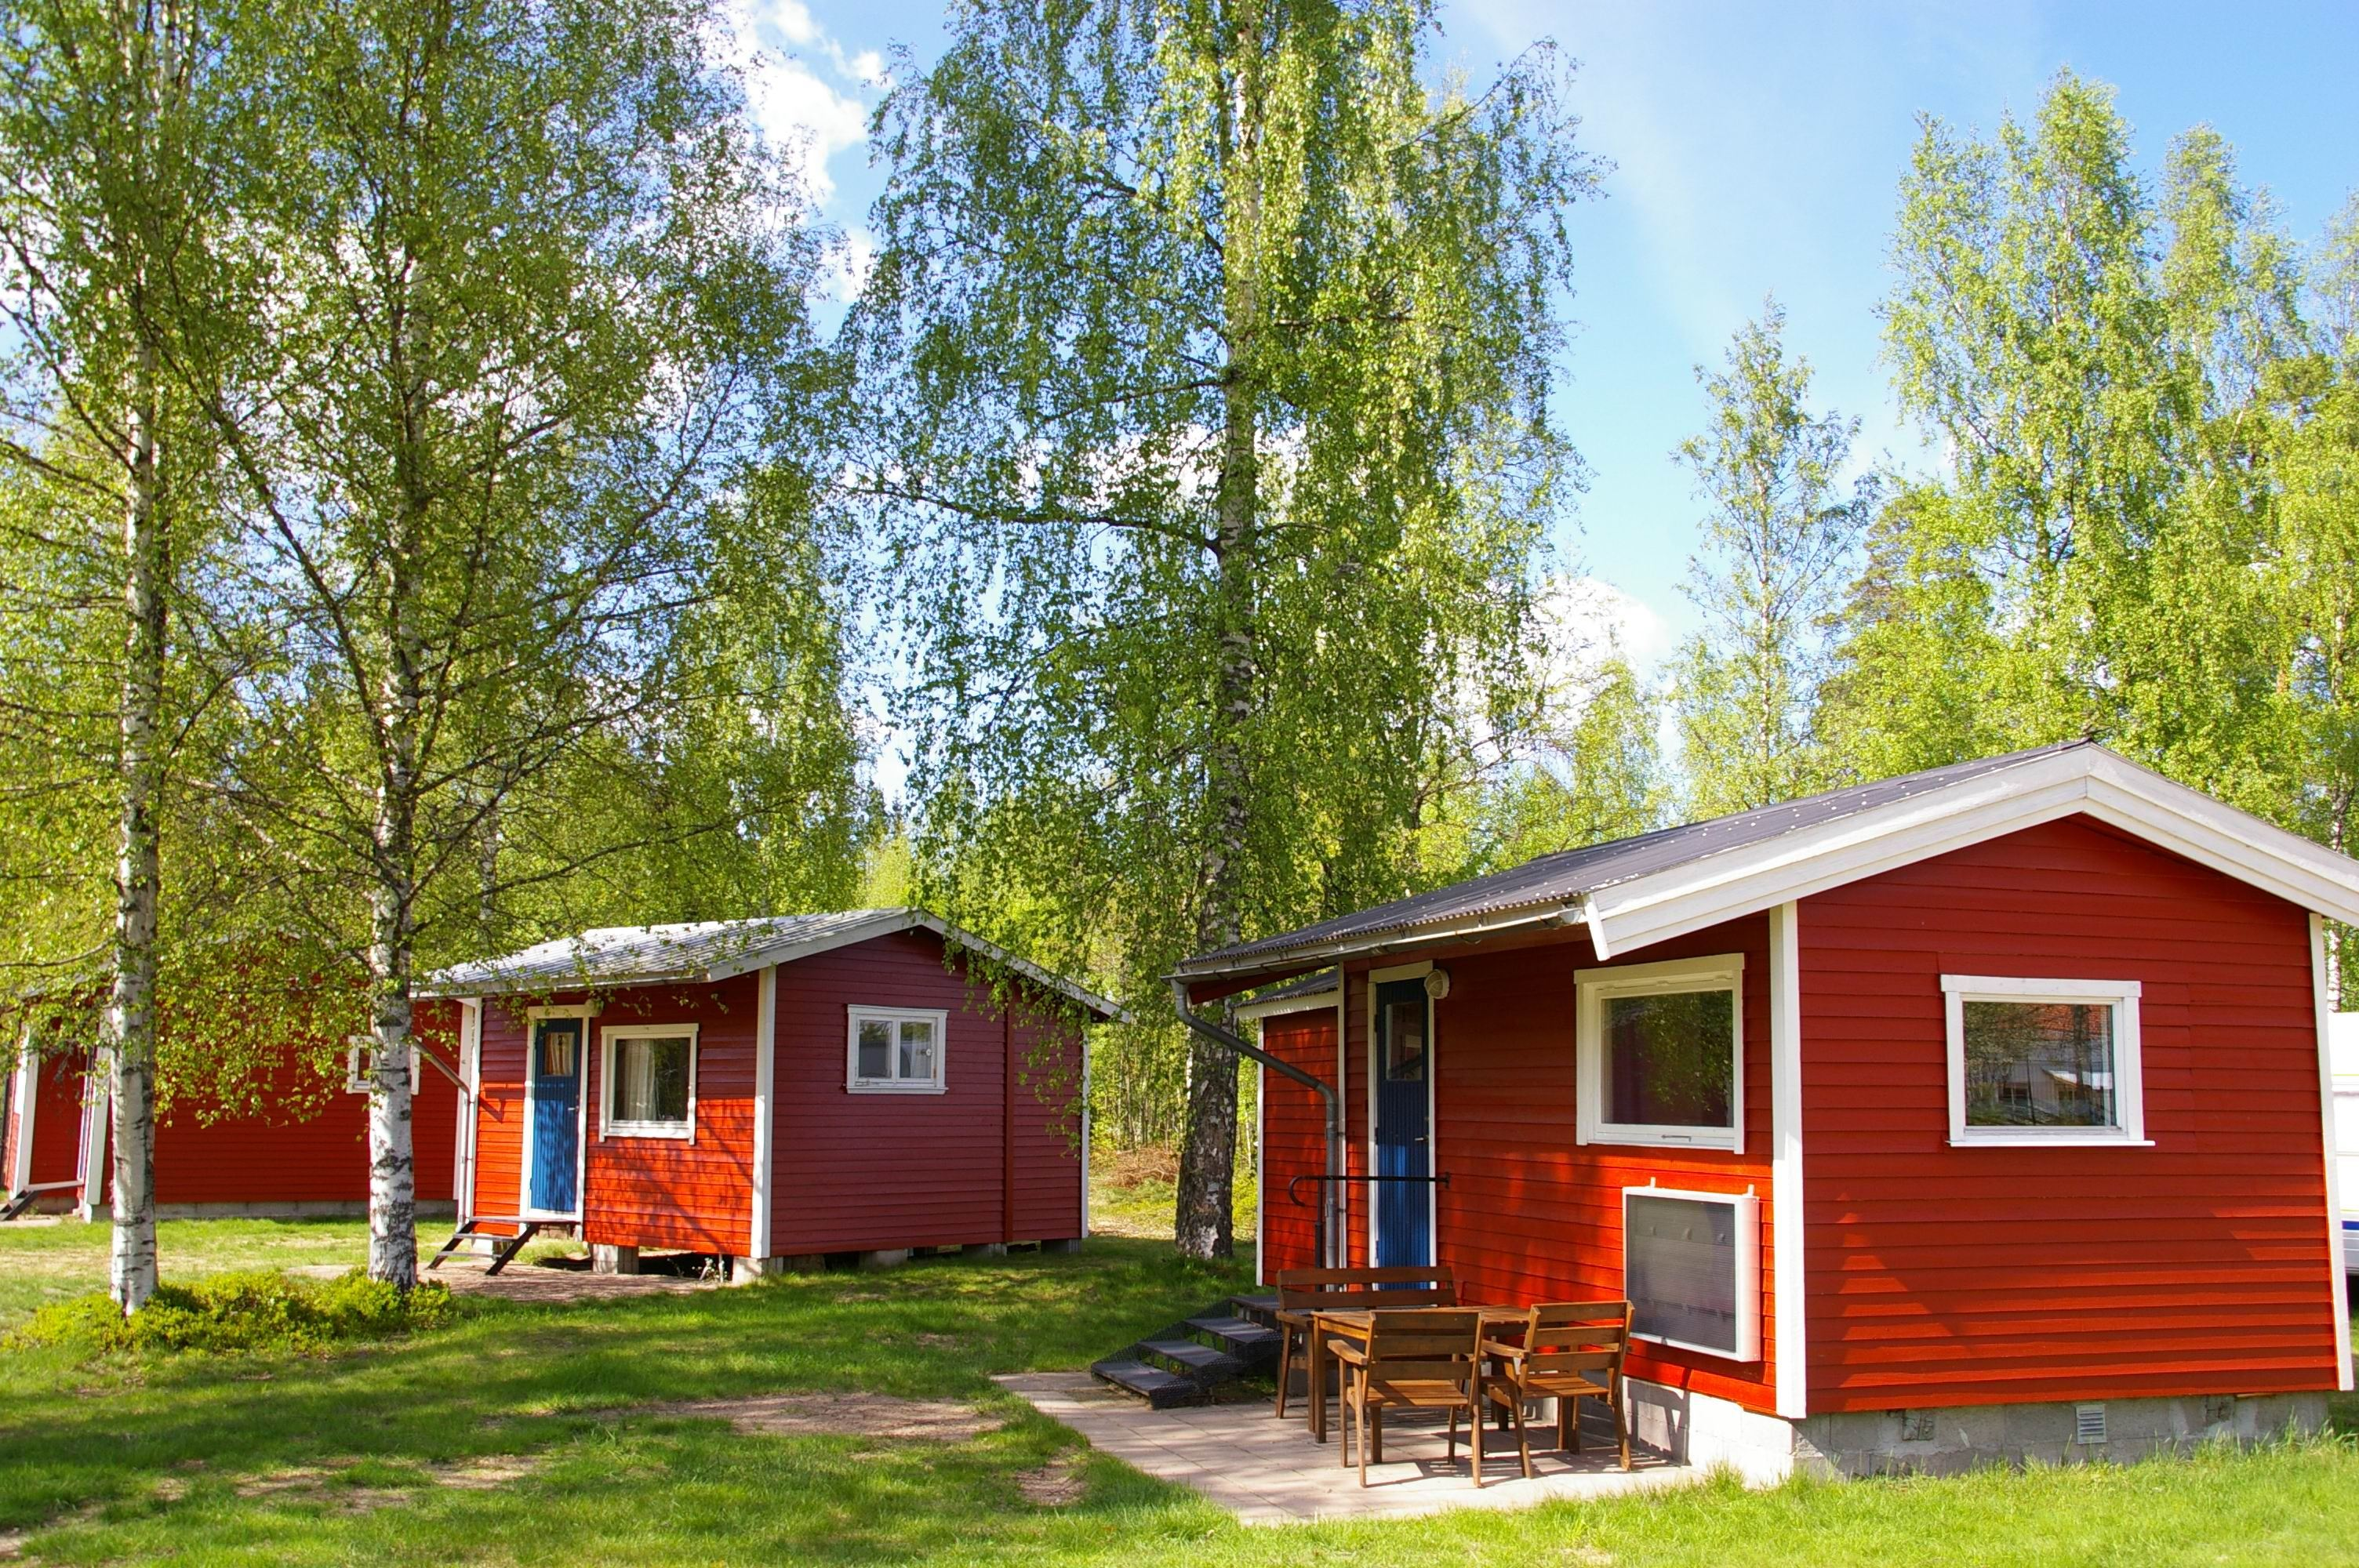 Camping 45/Cottages